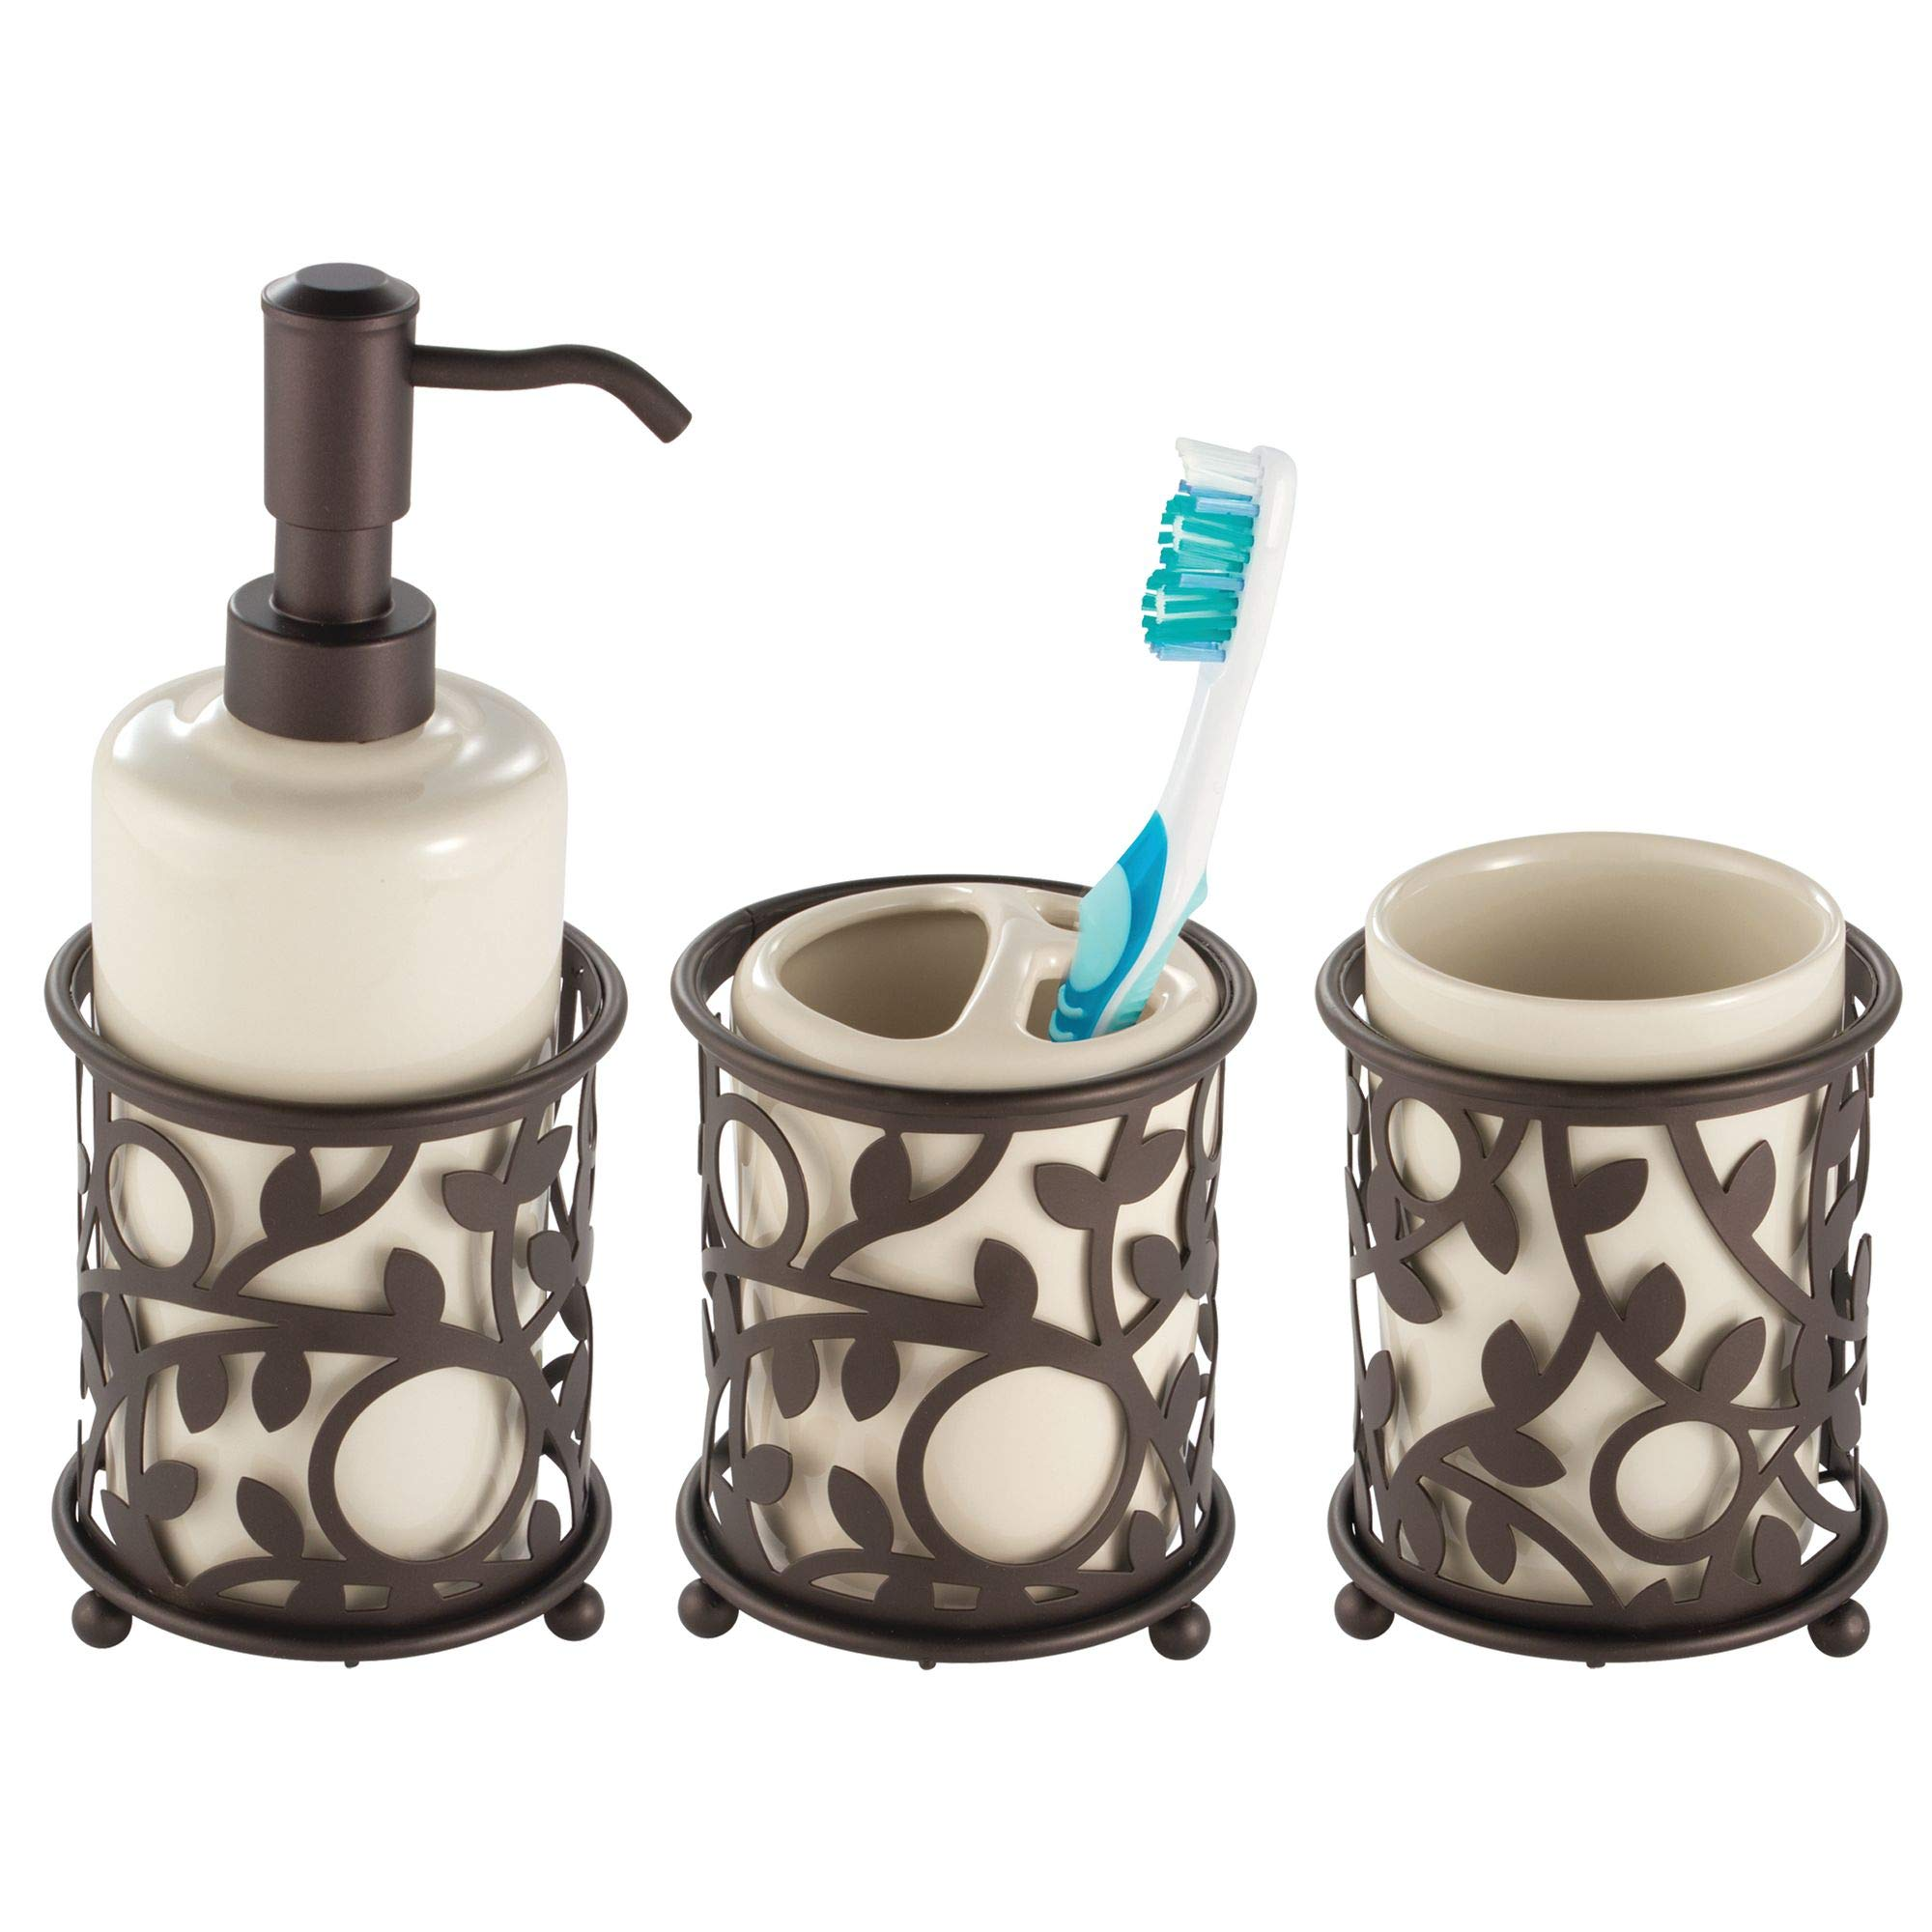 Mdesign Decorative Ceramic Bathroom Vanity Countertop Accessory Set Includes Refillable Soap Dispenser Divided Toothbrush Stand Tumbler Rinsing